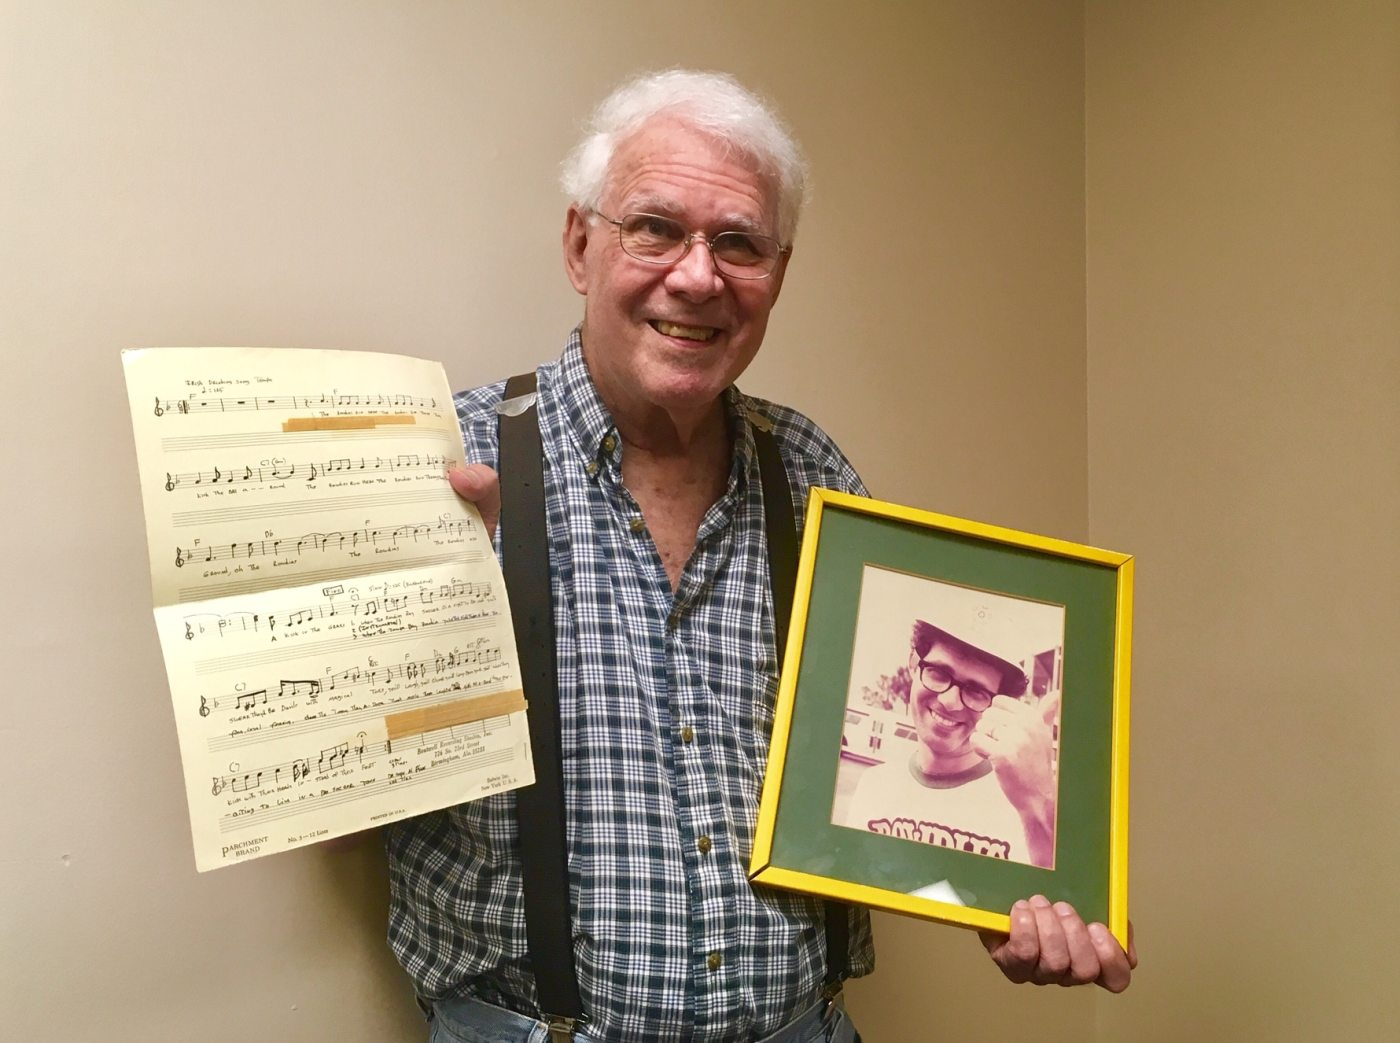 Ed Boutwell with the Tampa Bay Rowdies song sheet